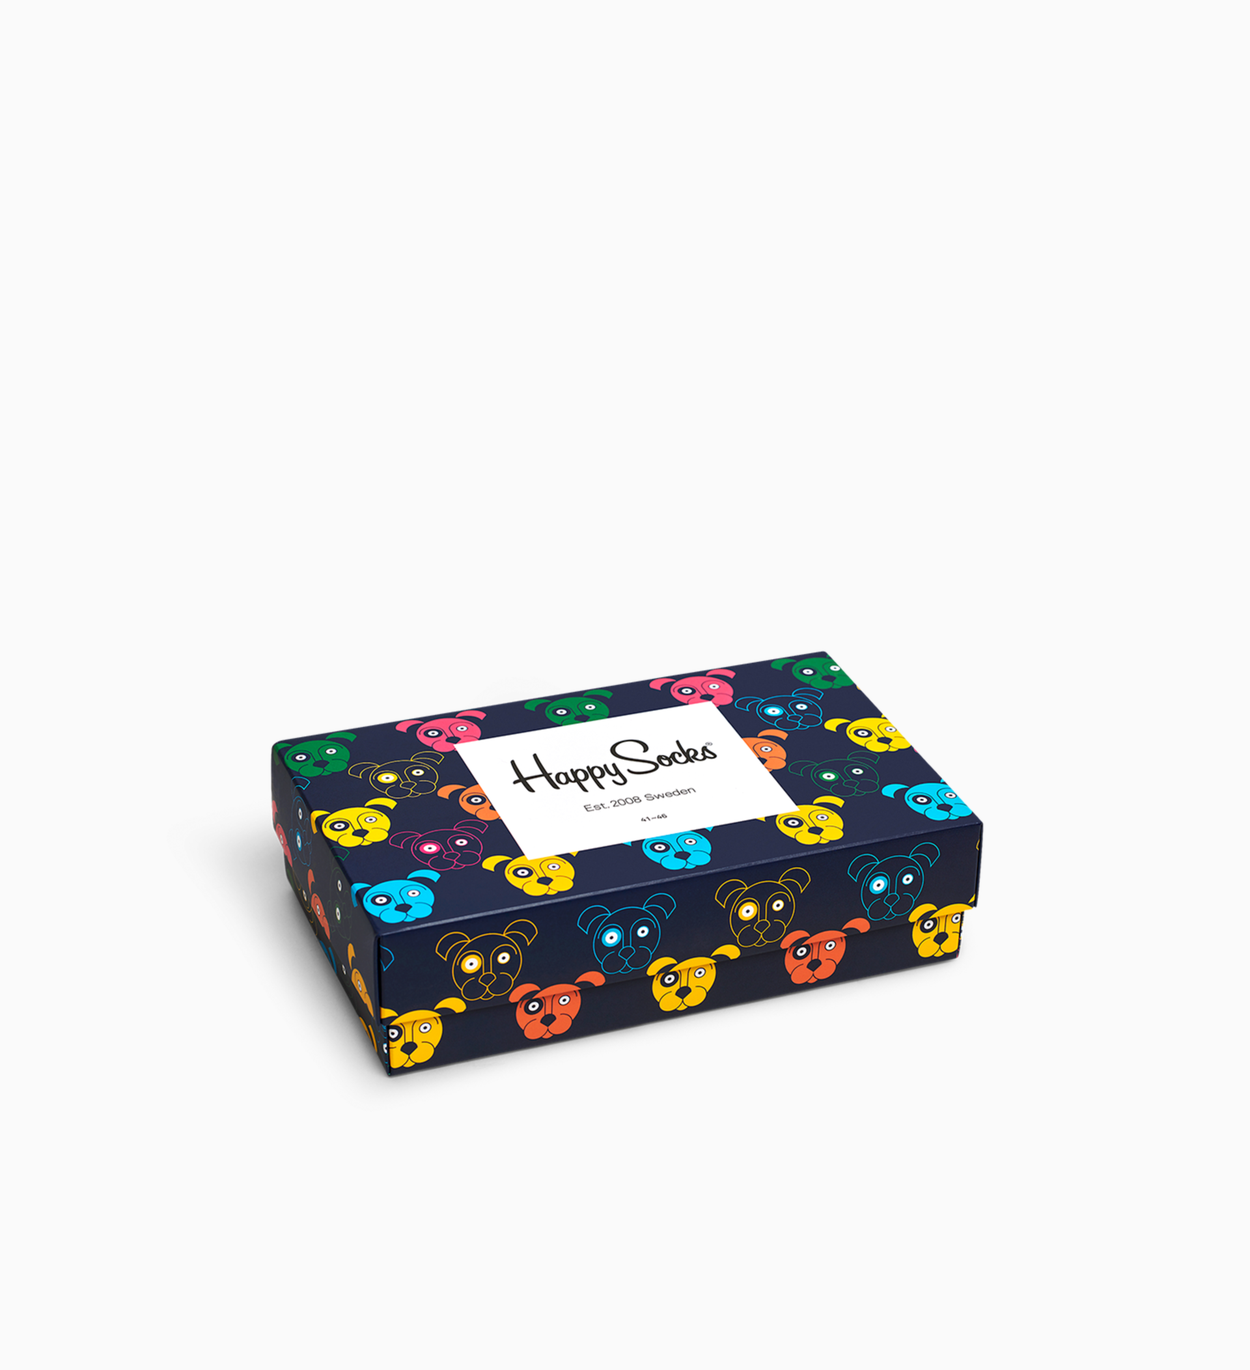 Bunte & Witzige Dog Socks Geschenkbox 3er-Pack | Happy Socks